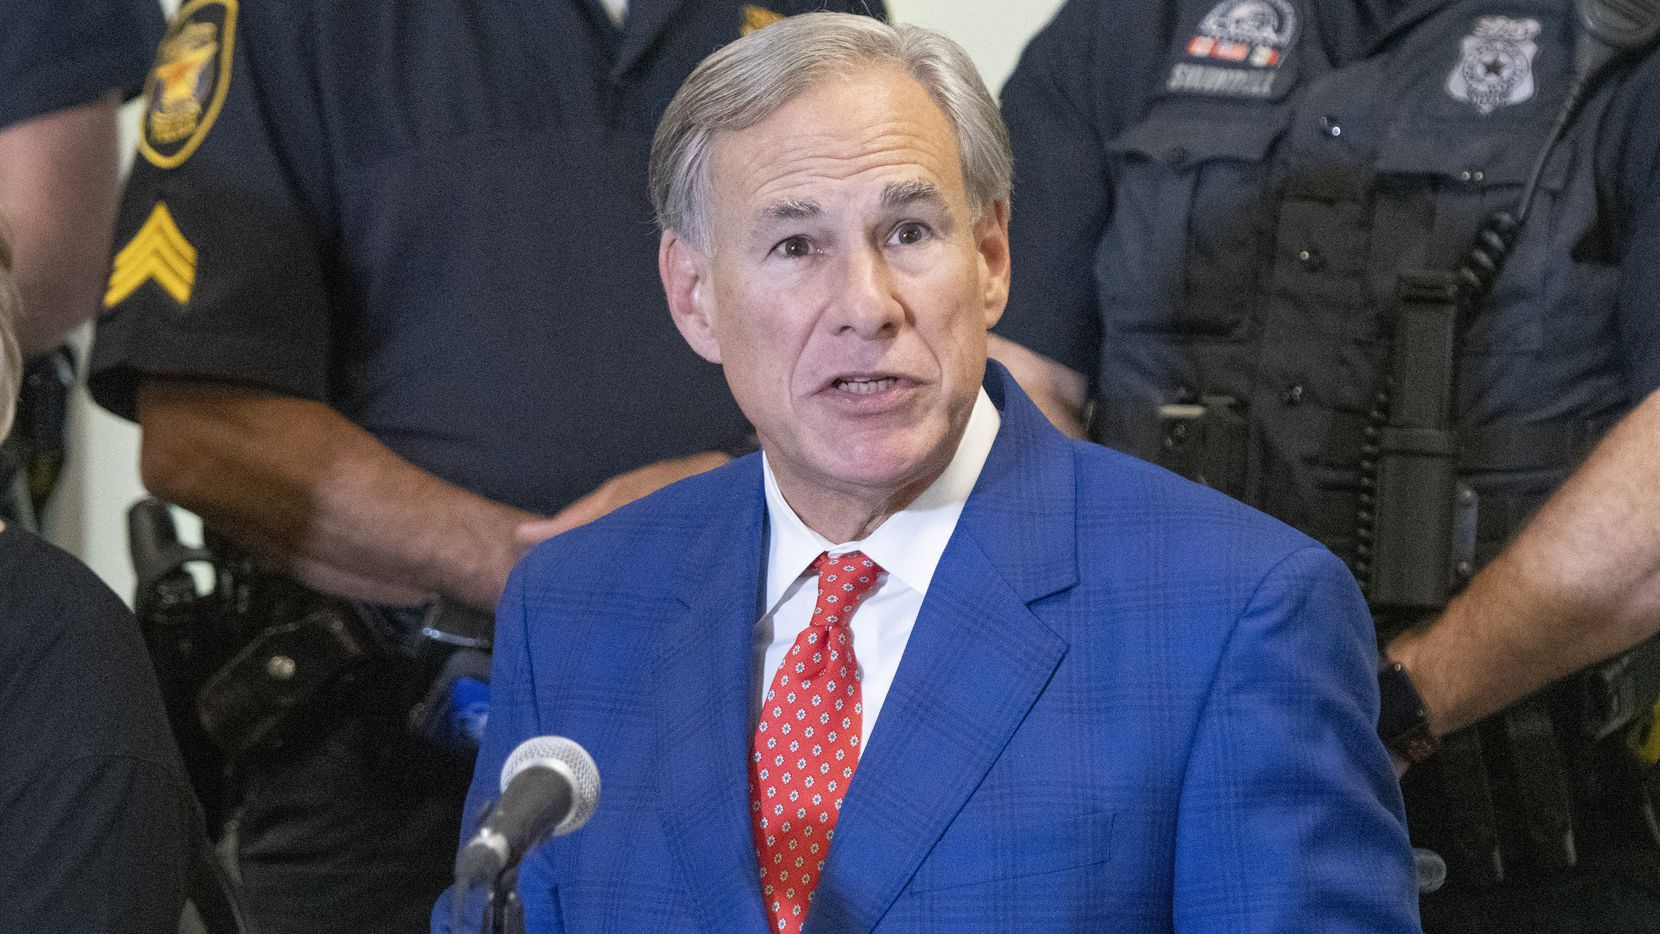 Texas Governor Greg Abbott, answers a question after signing HB9 into law during a press conference at the Fort Worth Police Officers Association headquarters on Friday September 17, 2021. (Robert W. Hart/Special Contributor)